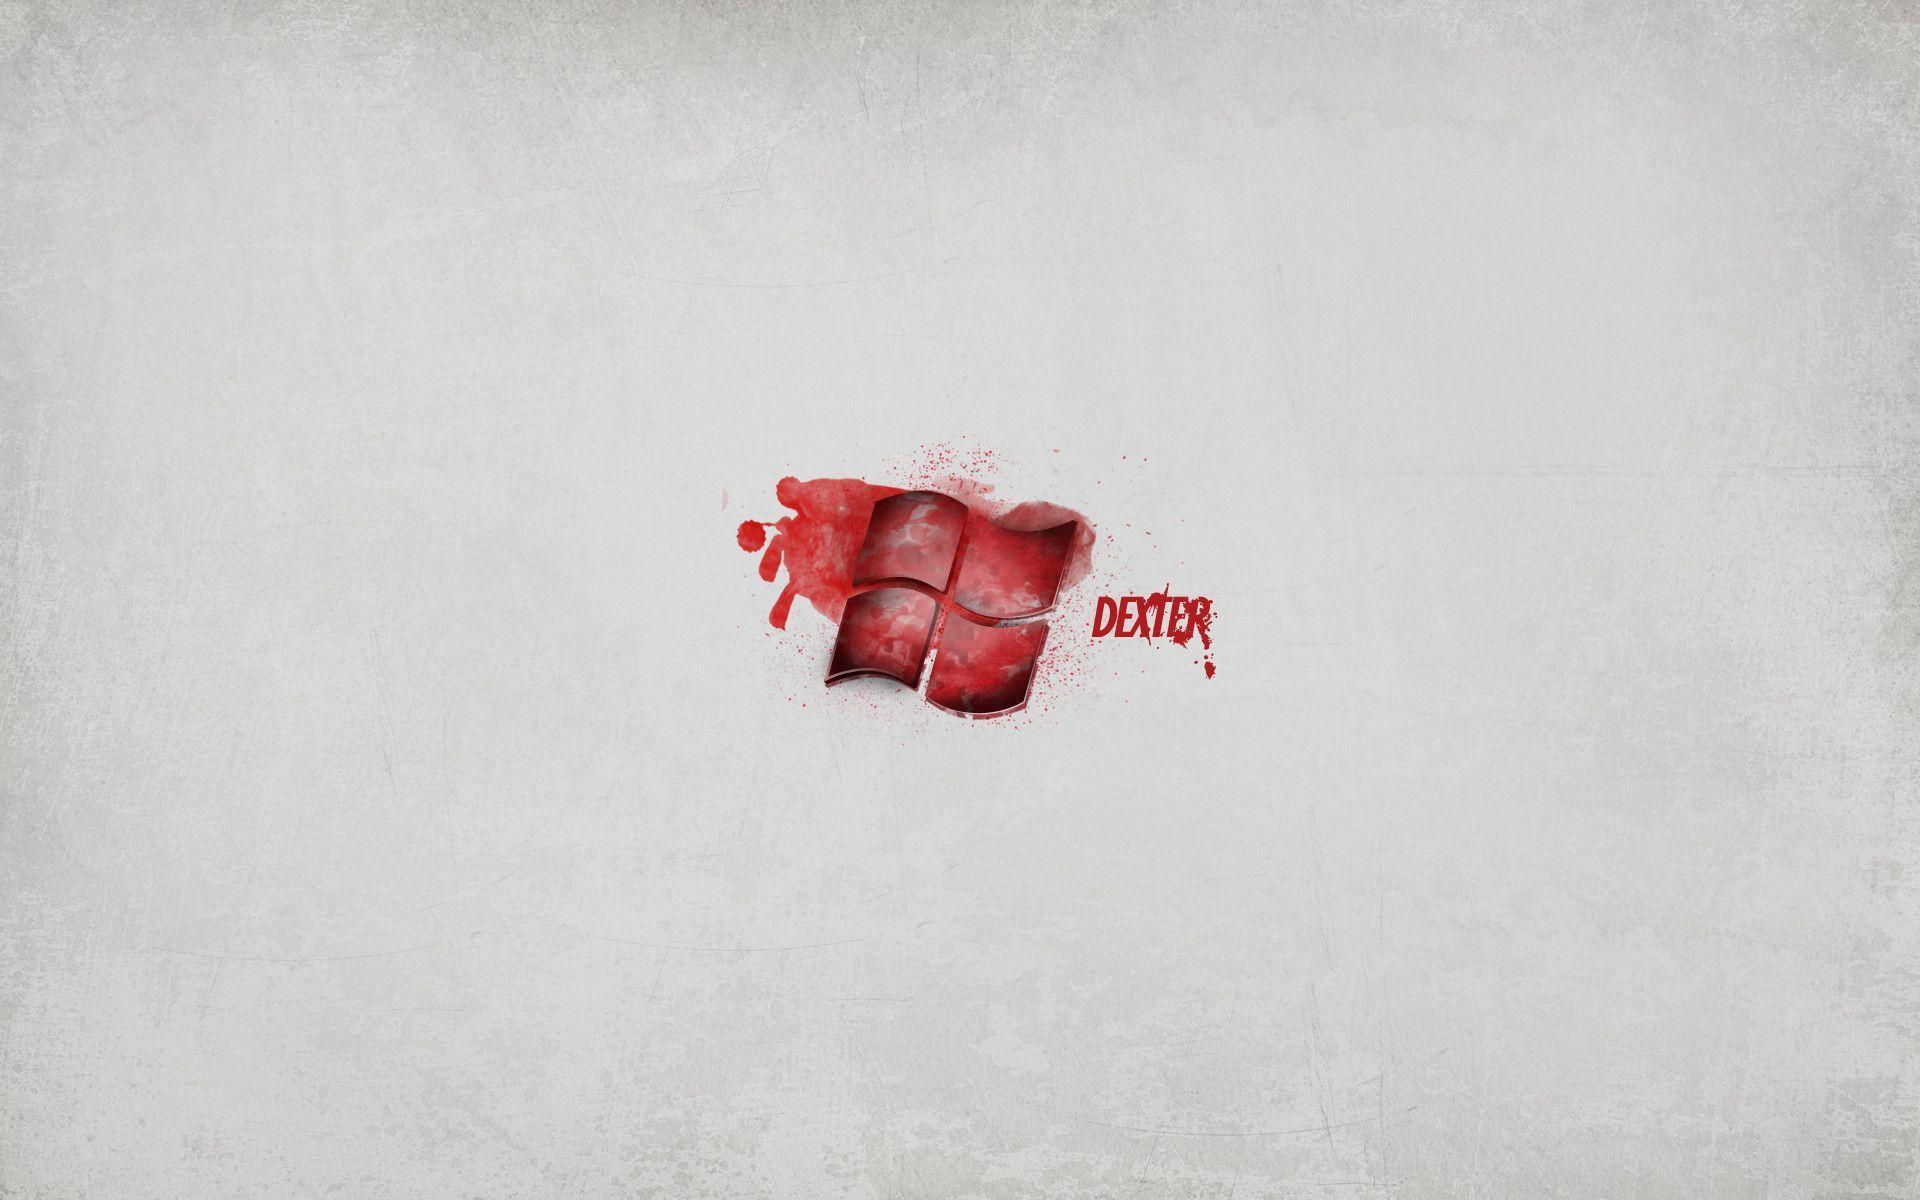 Dexter Windows Wallpaper - Dexter Wallpaper (28729569) - Fanpop